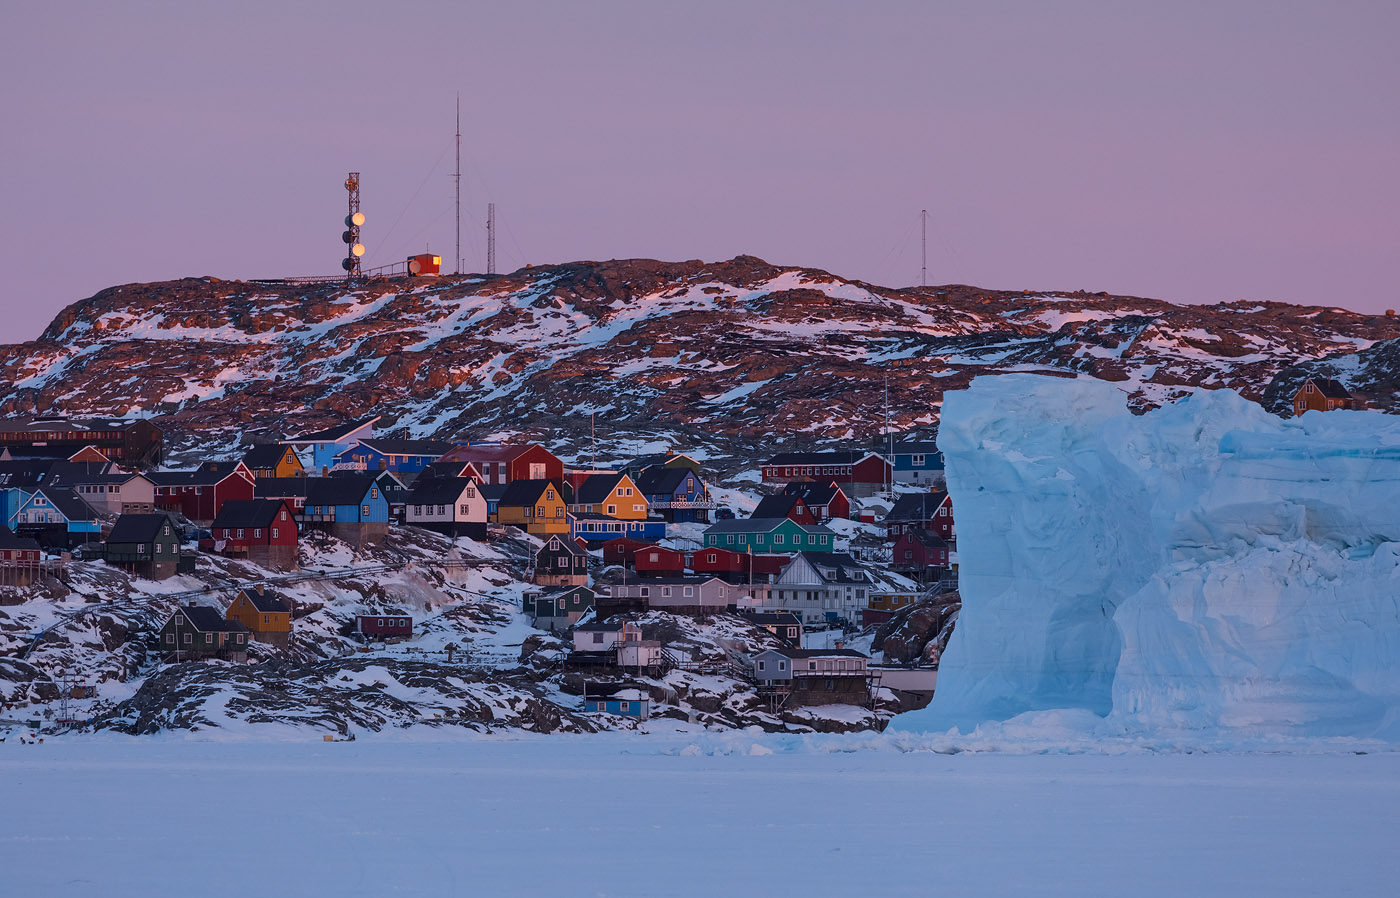 Houses in Uummannaq and an iceberg stuck in sea ice next to town